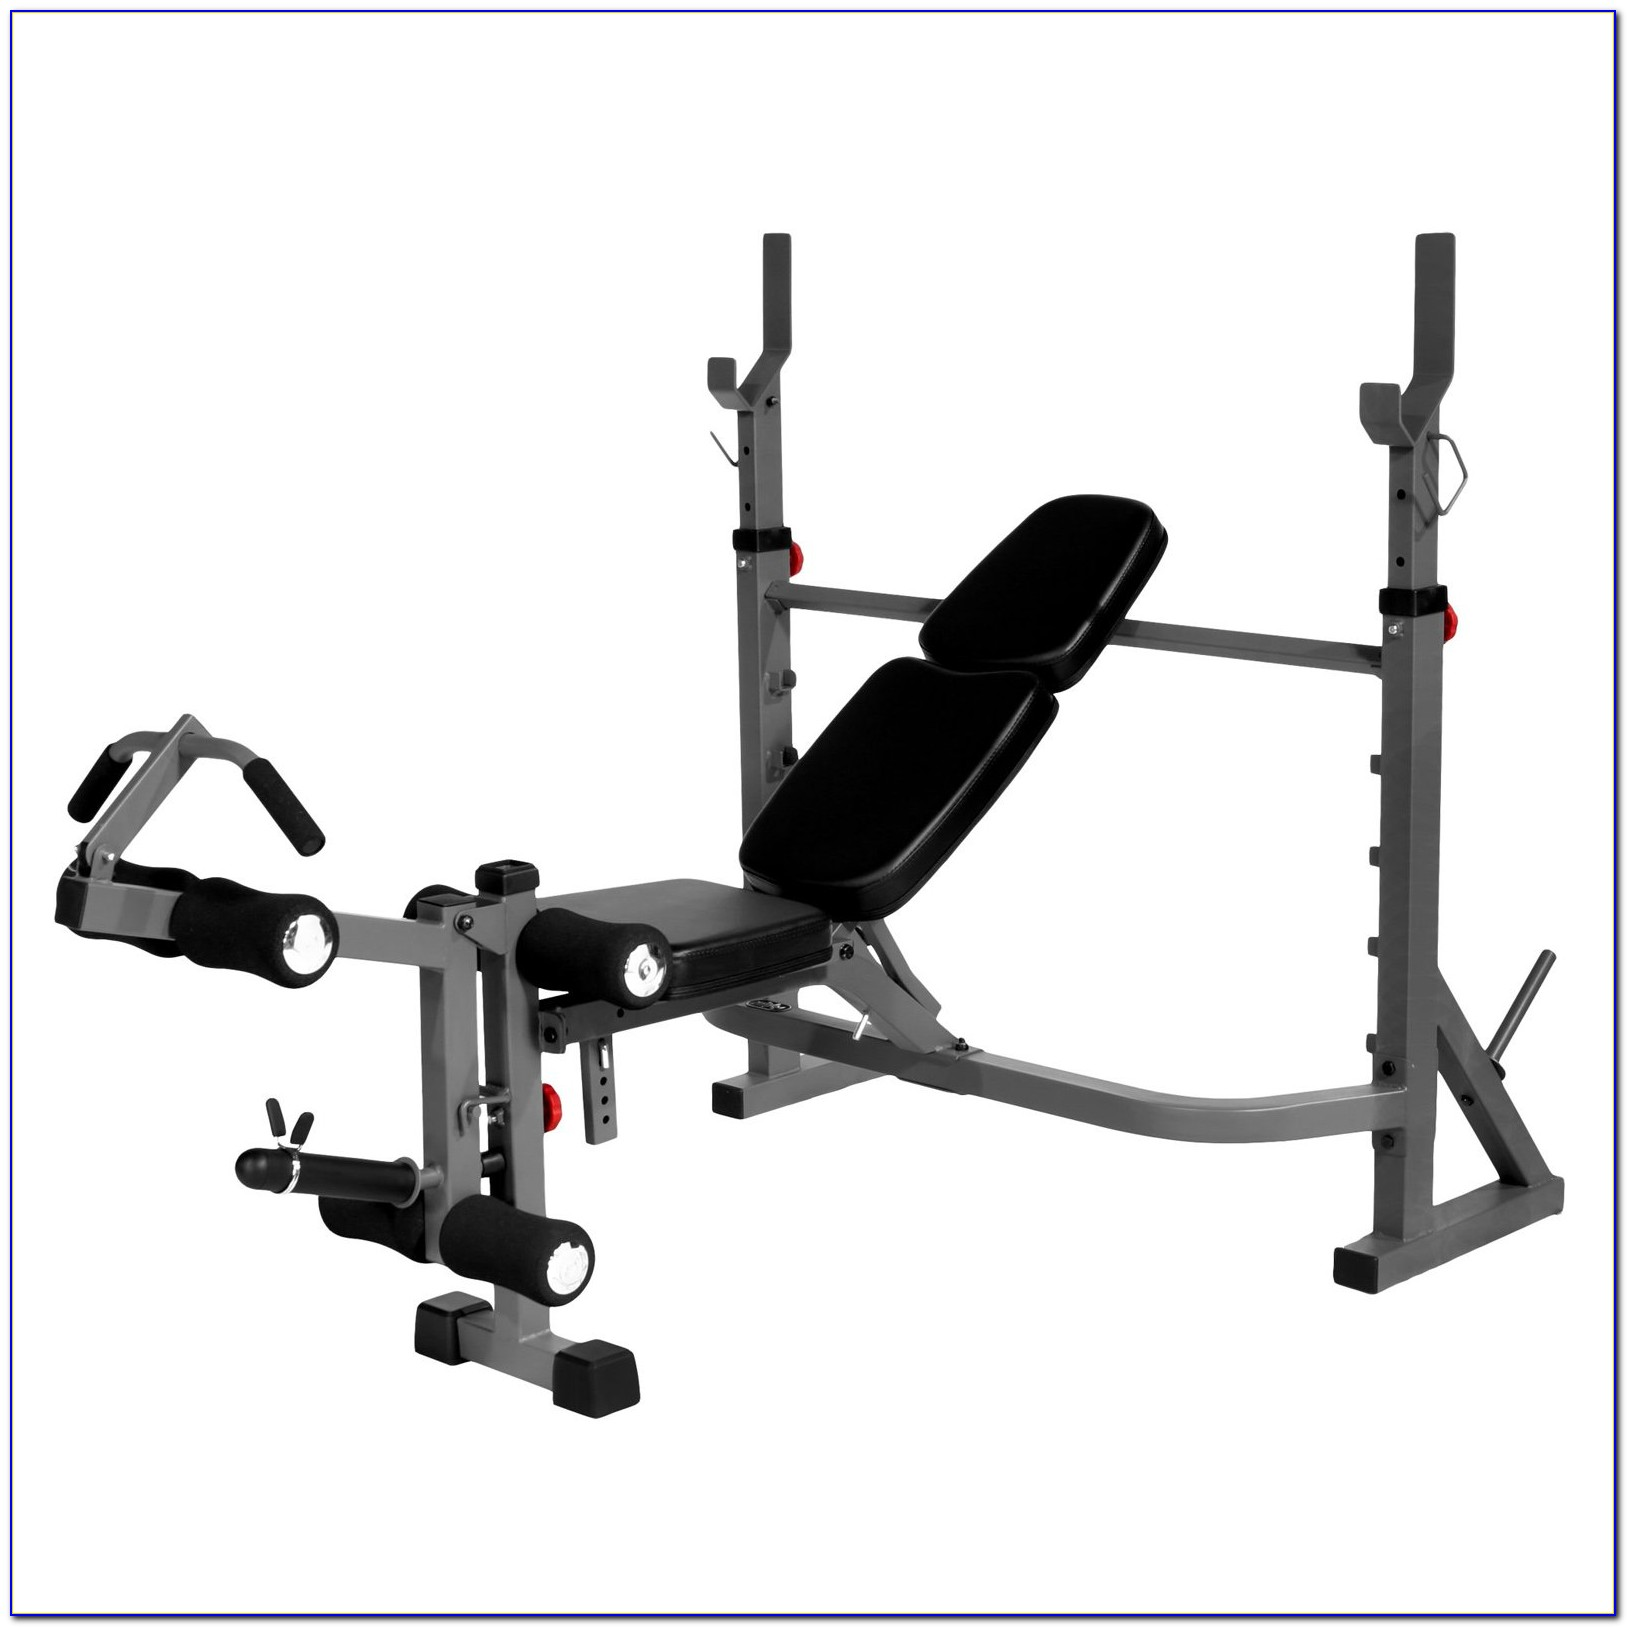 Weight Bench Press With Leg Curl Extensions